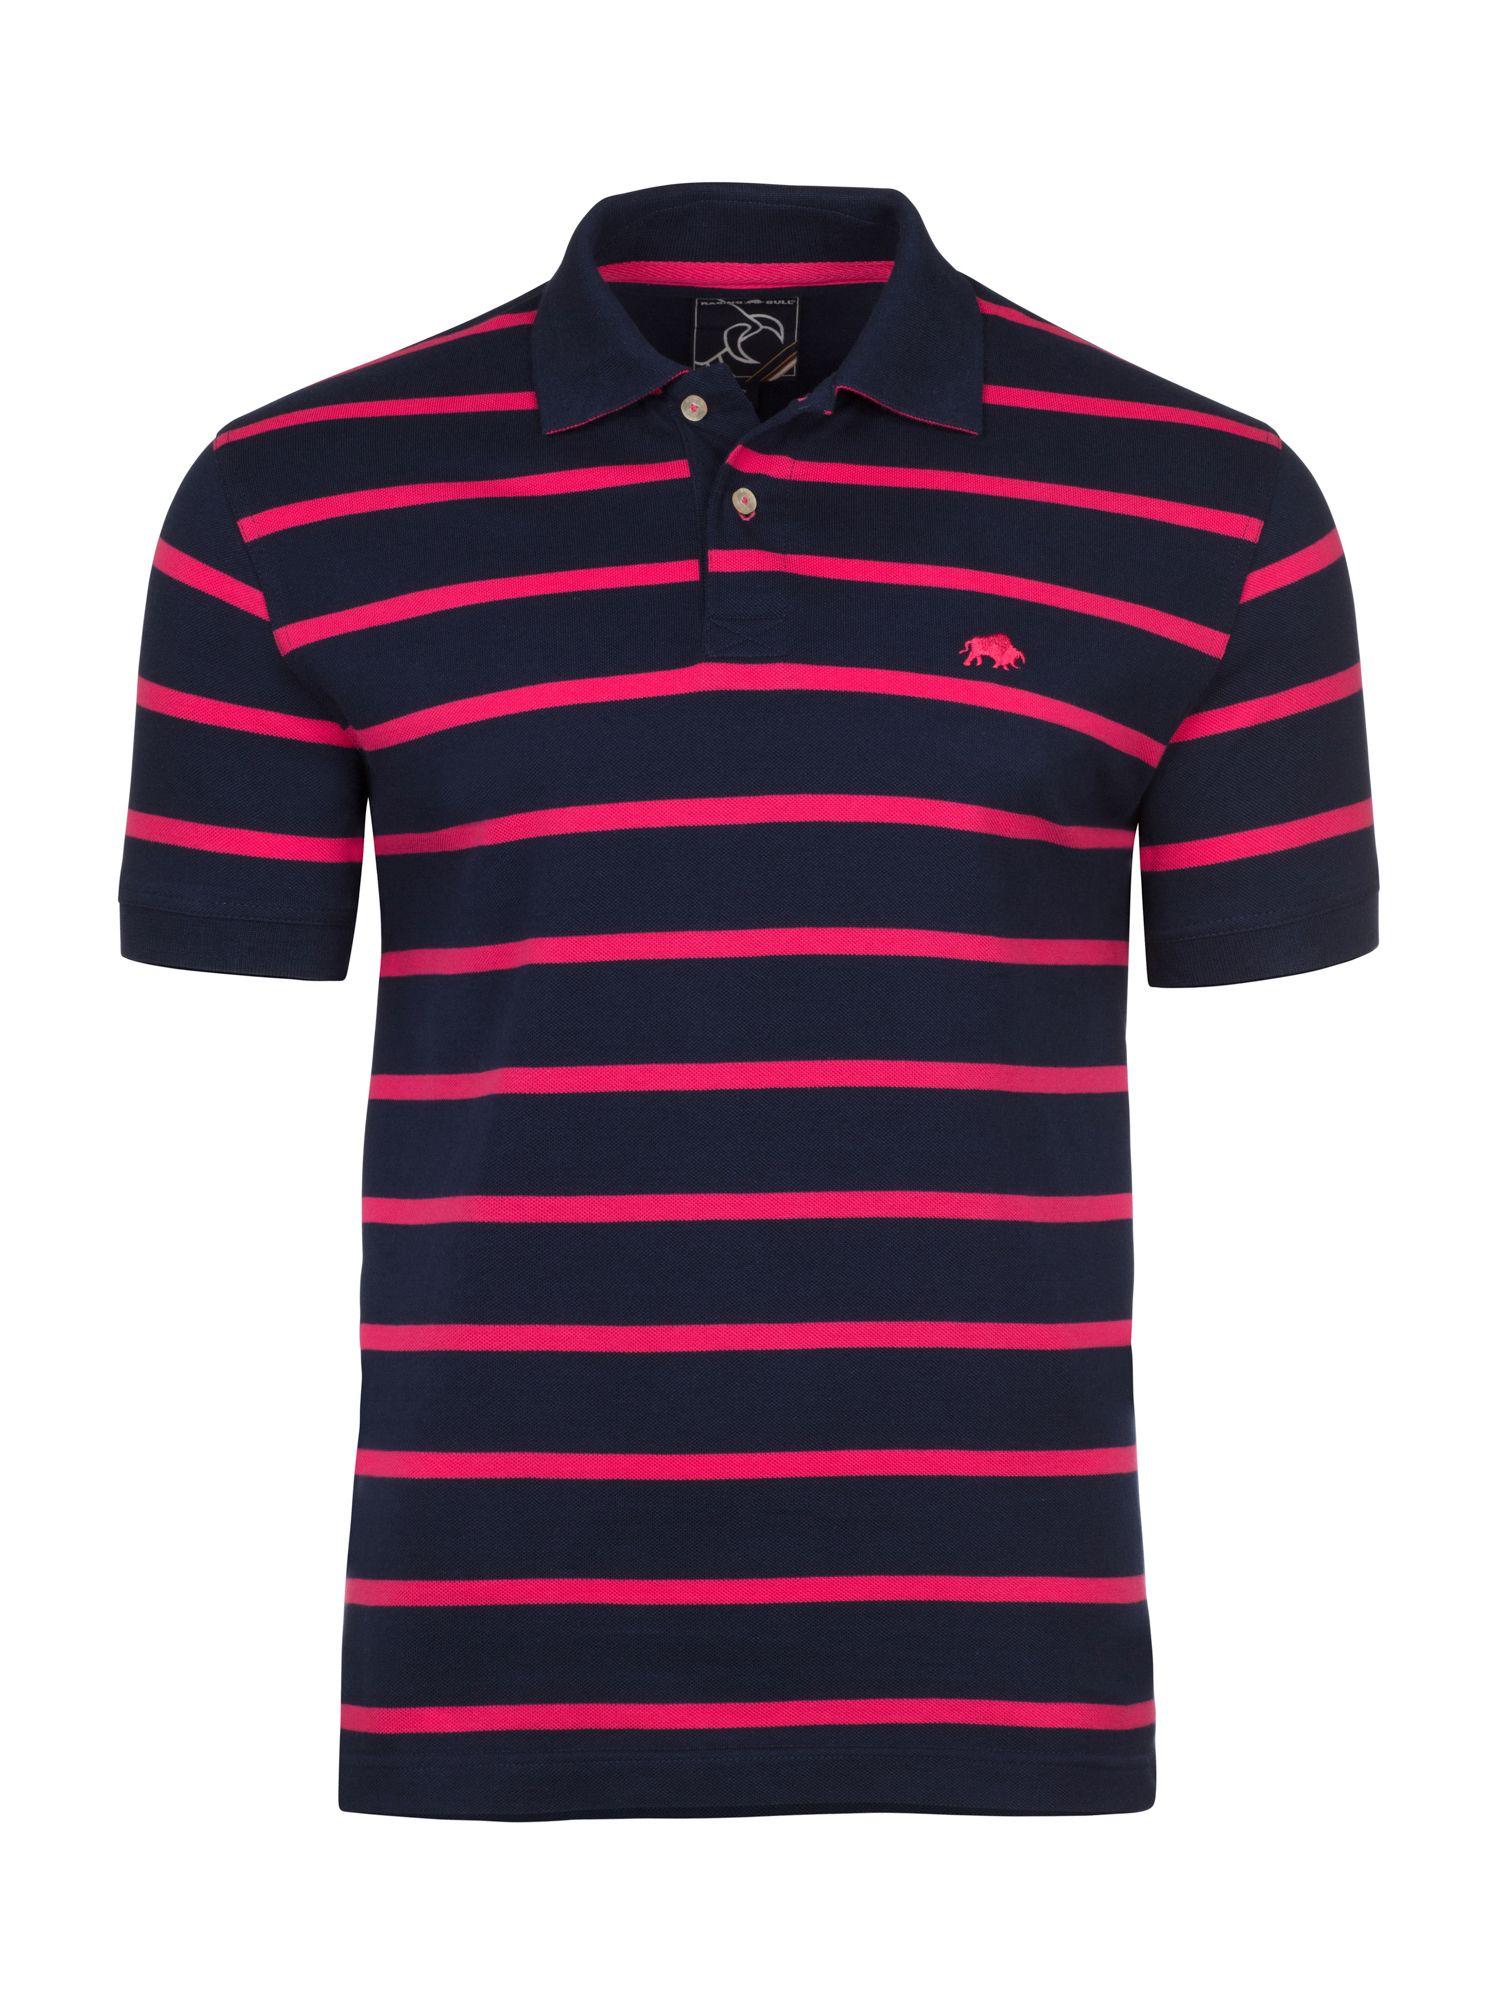 Men's Raging Bull Big & Tall Thin Stripe Polo, Pink